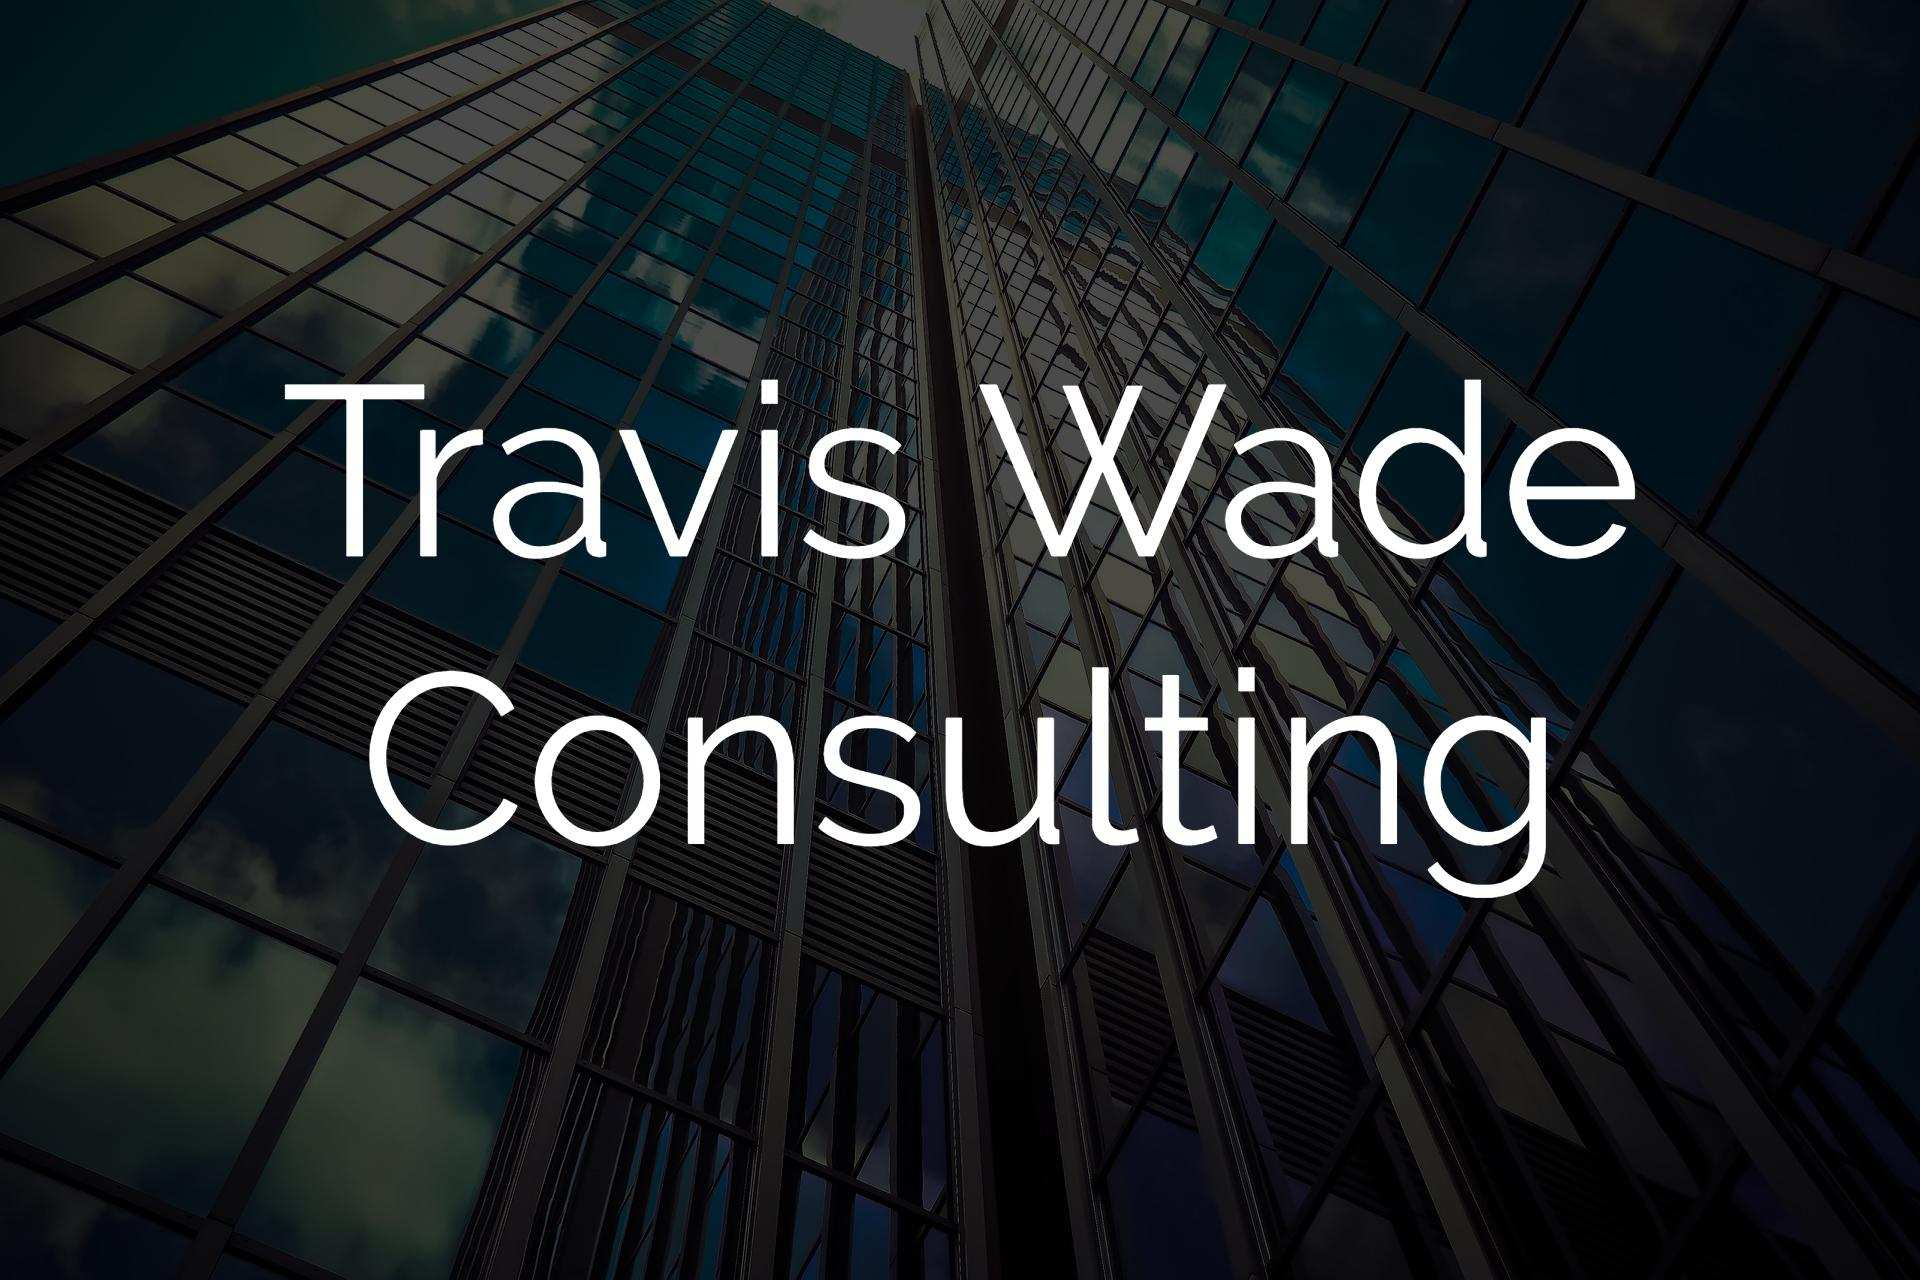 Travis Wade Consulting